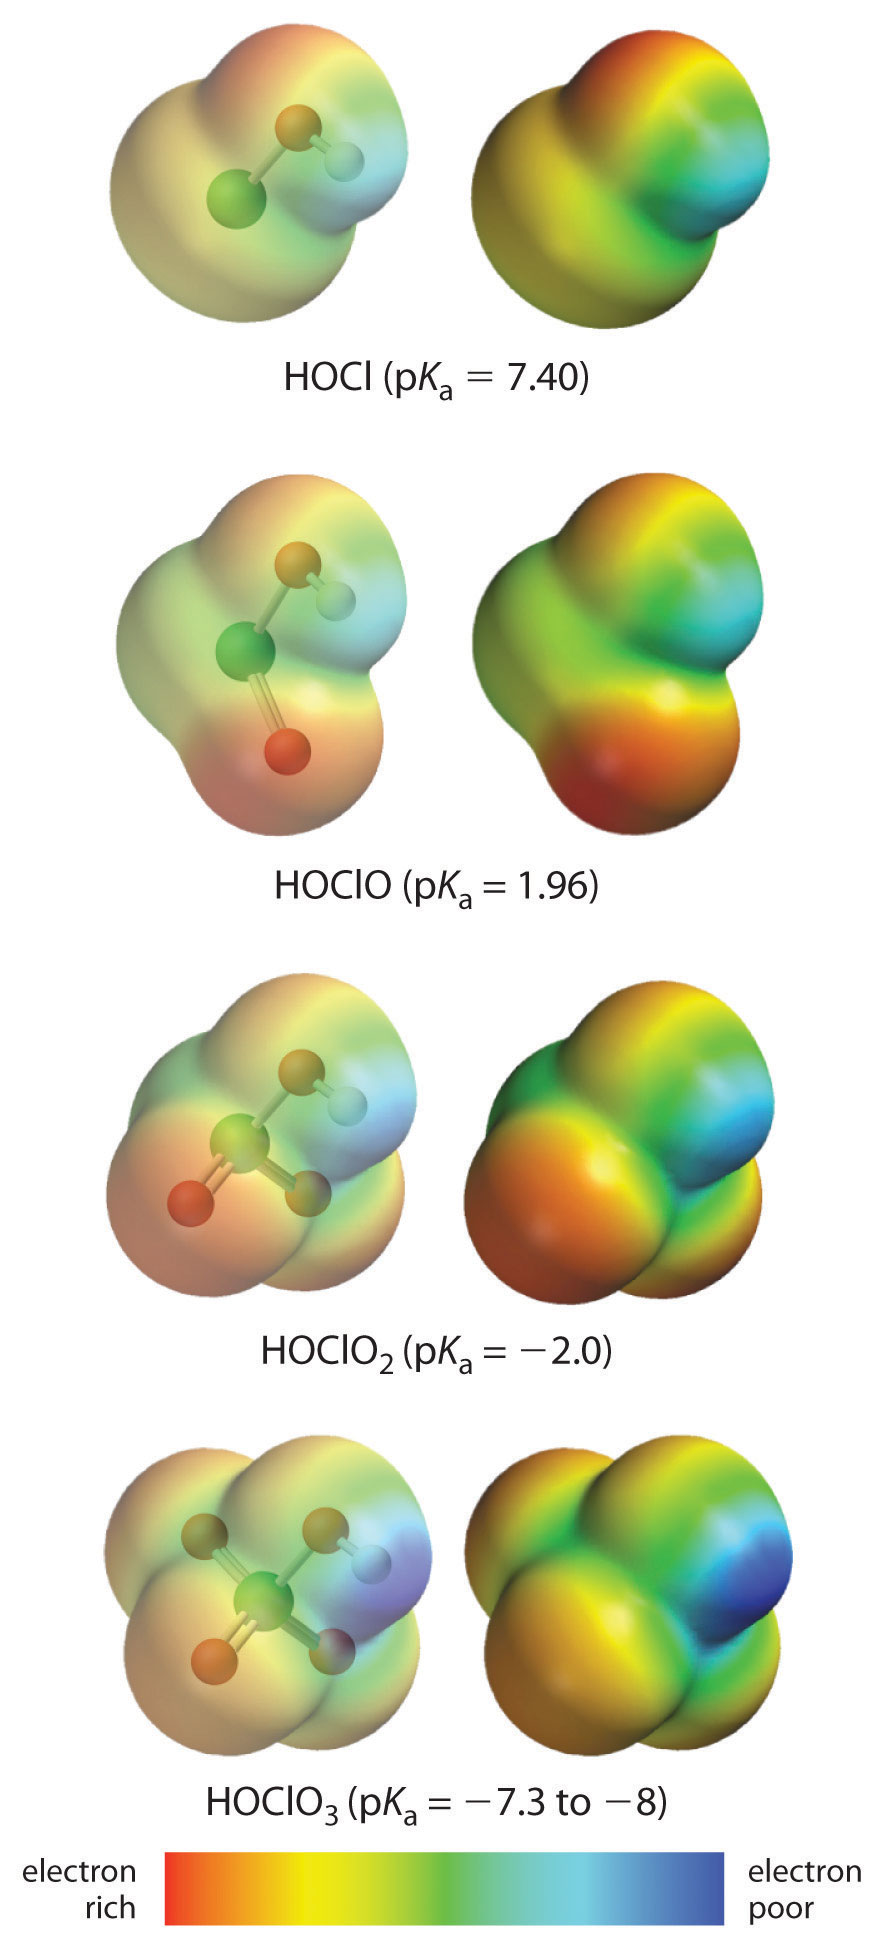 Molecular Structure And Acidbase Strength Oxygen Atomic Diagram These Electrostatic Potential Maps Show How The Electron Density On Oh Unit Decreases As Number Of Terminal Atoms Increases